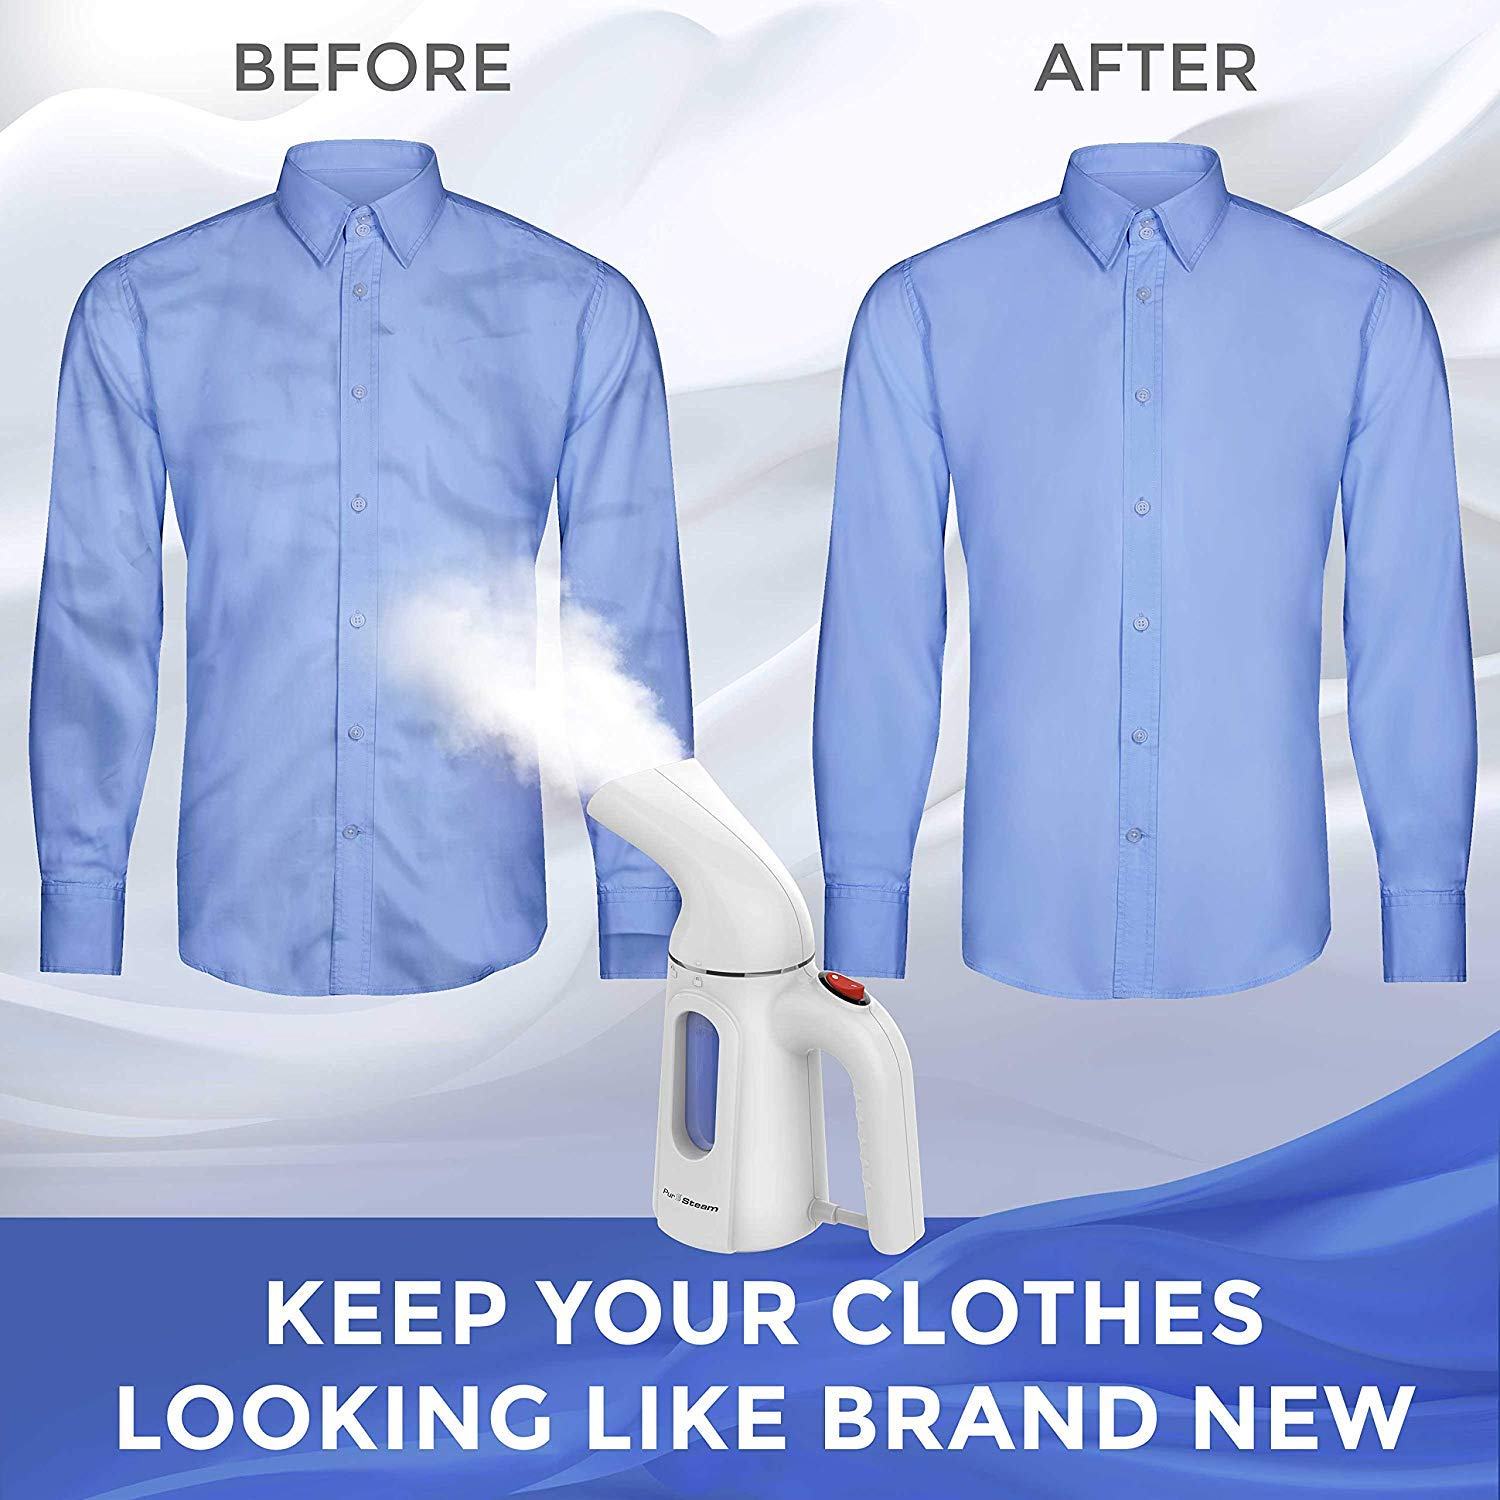 PurSteam Travel Steamer for Clothes. Highest Quality, Fastest Heating InfaTherm Technology , 8-in-1, Wrinkle Remover- Clean- Sterilize-Refresh- Treat-, Auto Off by PurSteam World's Best Steamers (Image #5)